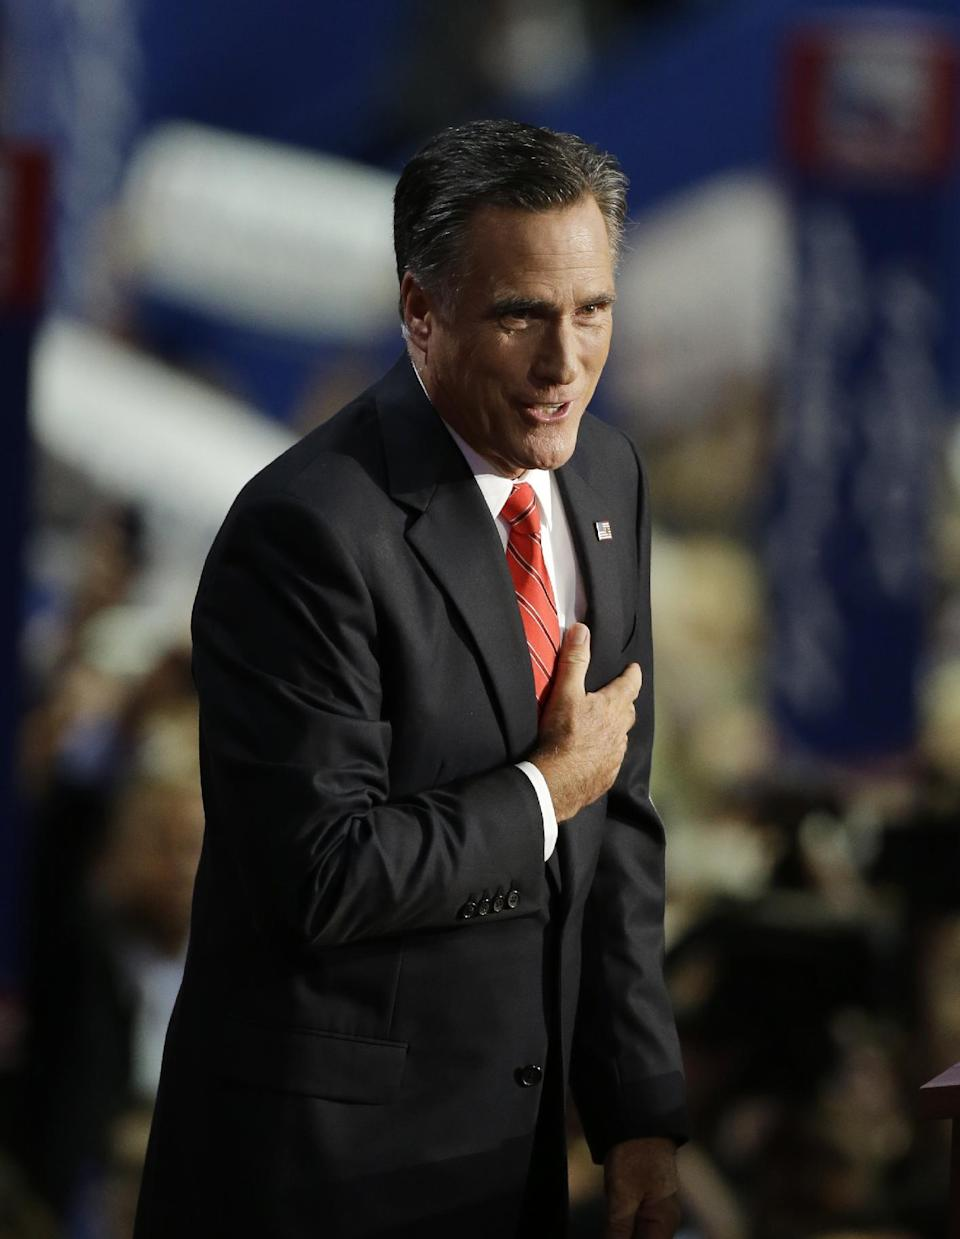 Mitt Romney accepts the nomination as the Republican candidate for U.S. president during the Republican National Convention in Tampa, Fla., on Thursday, Aug. 30, 2012.  (AP Photo/Charlie Neibergall)